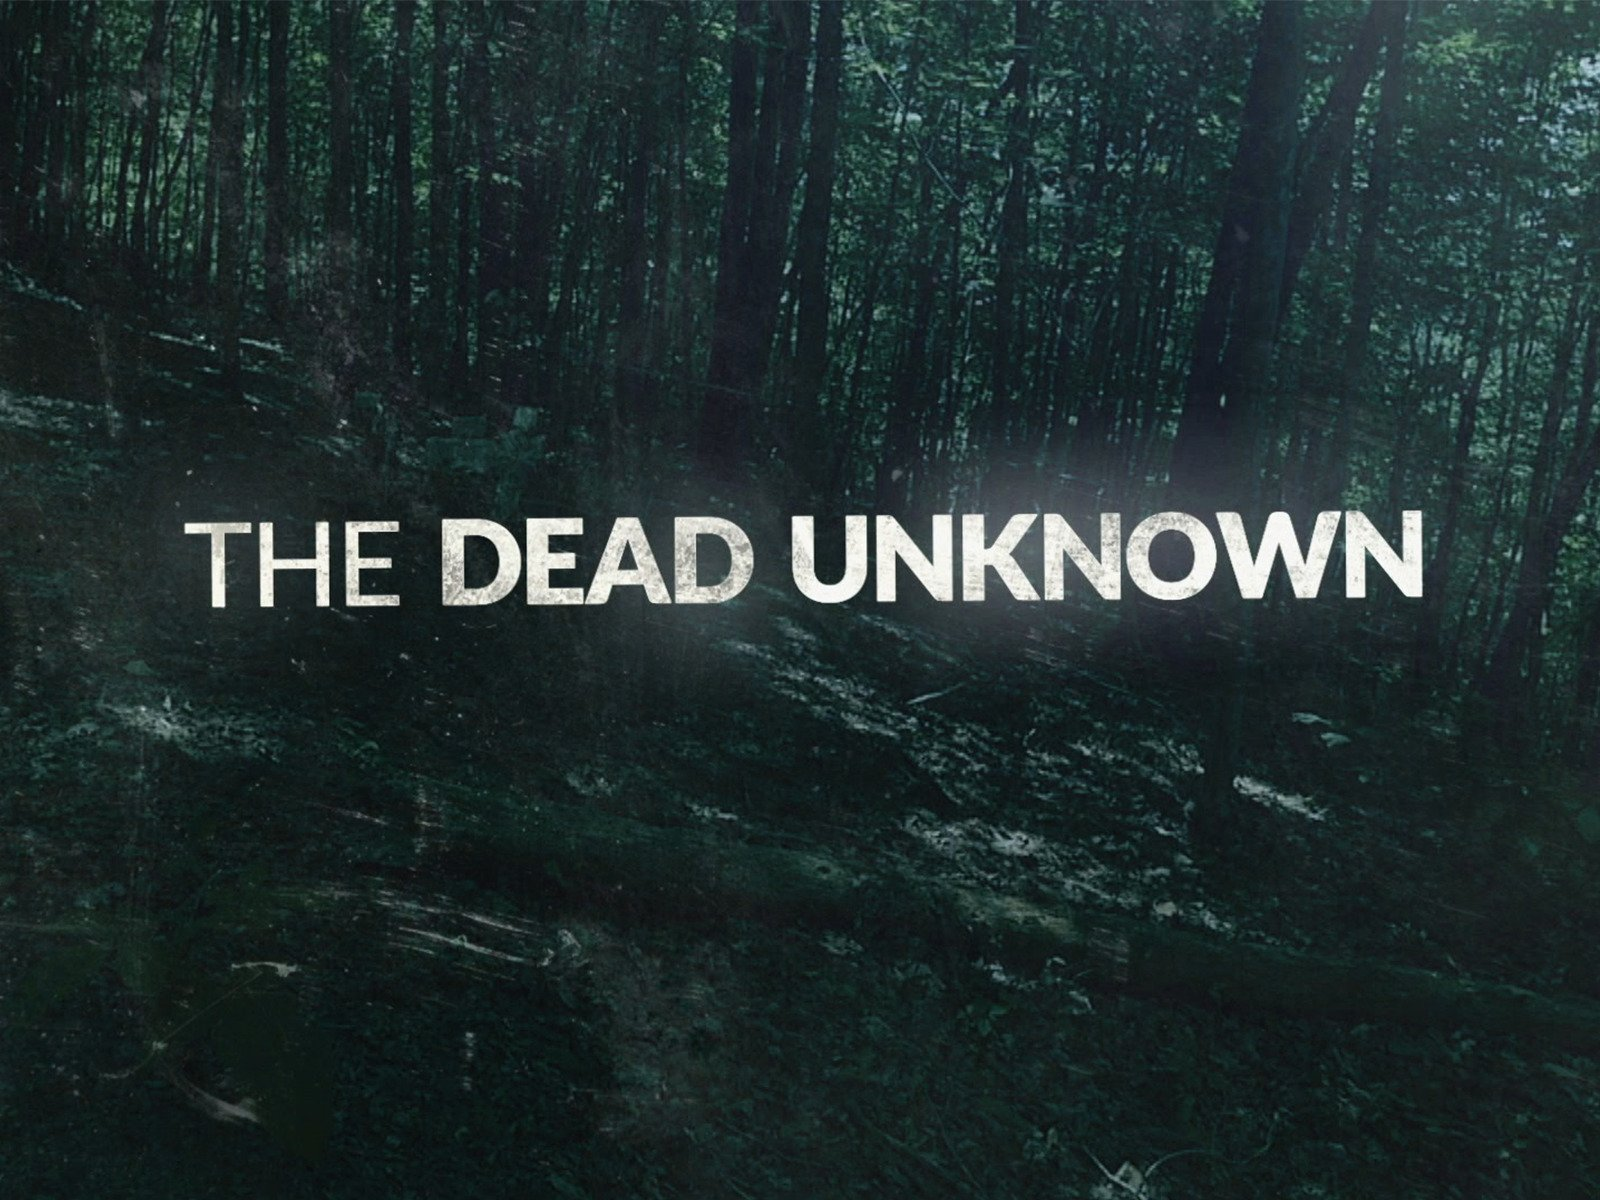 The Dead Unknown - Season 1